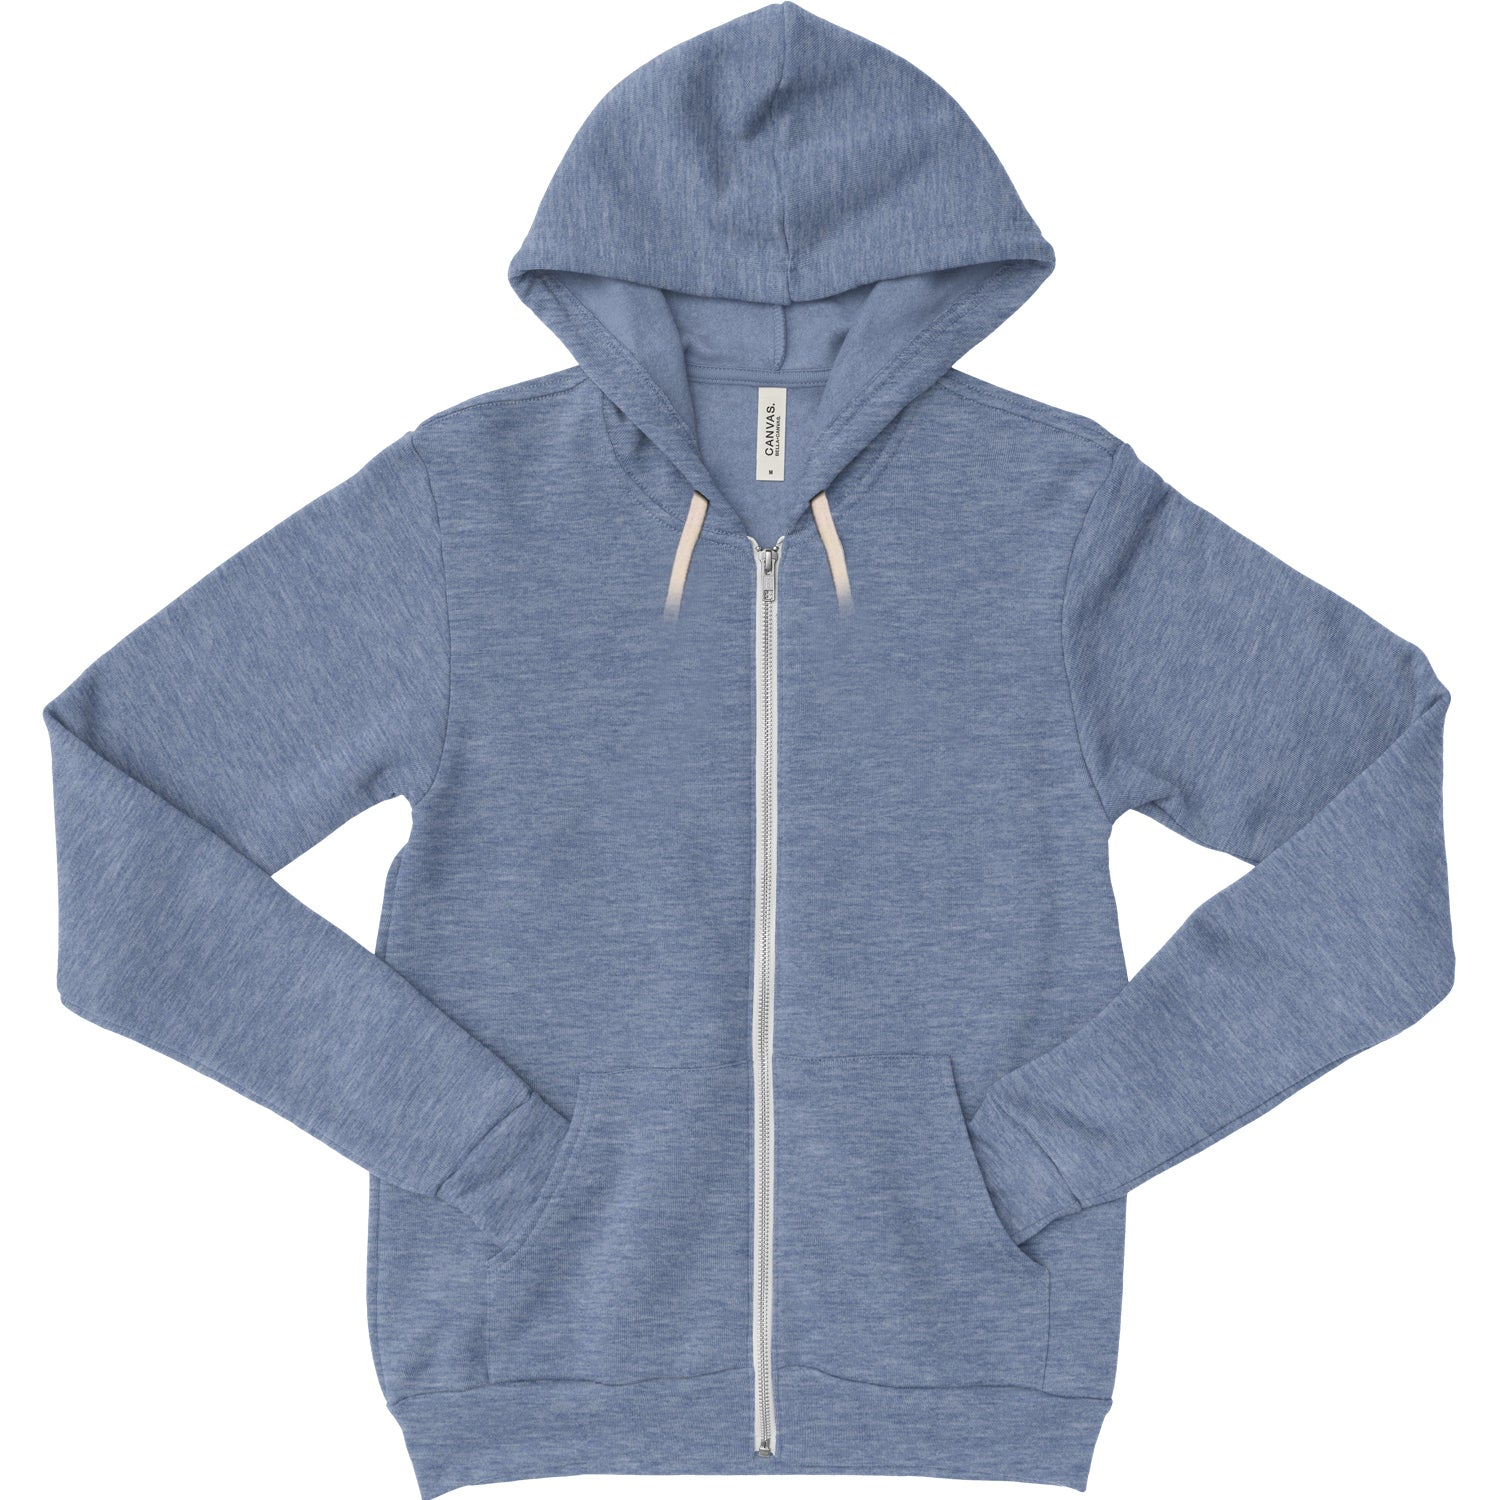 Unisex Zipper Tri Blend Fleece Hoodie - Blue Triblend